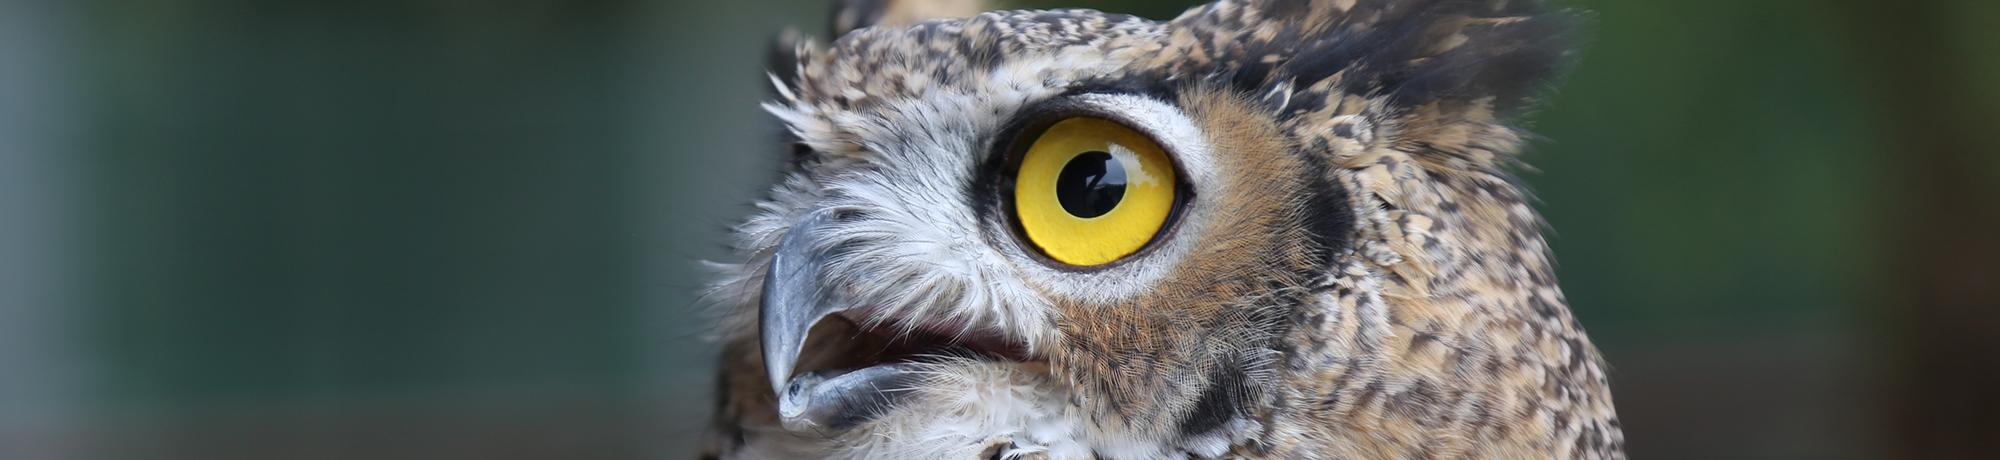 Luna is a great horned owl